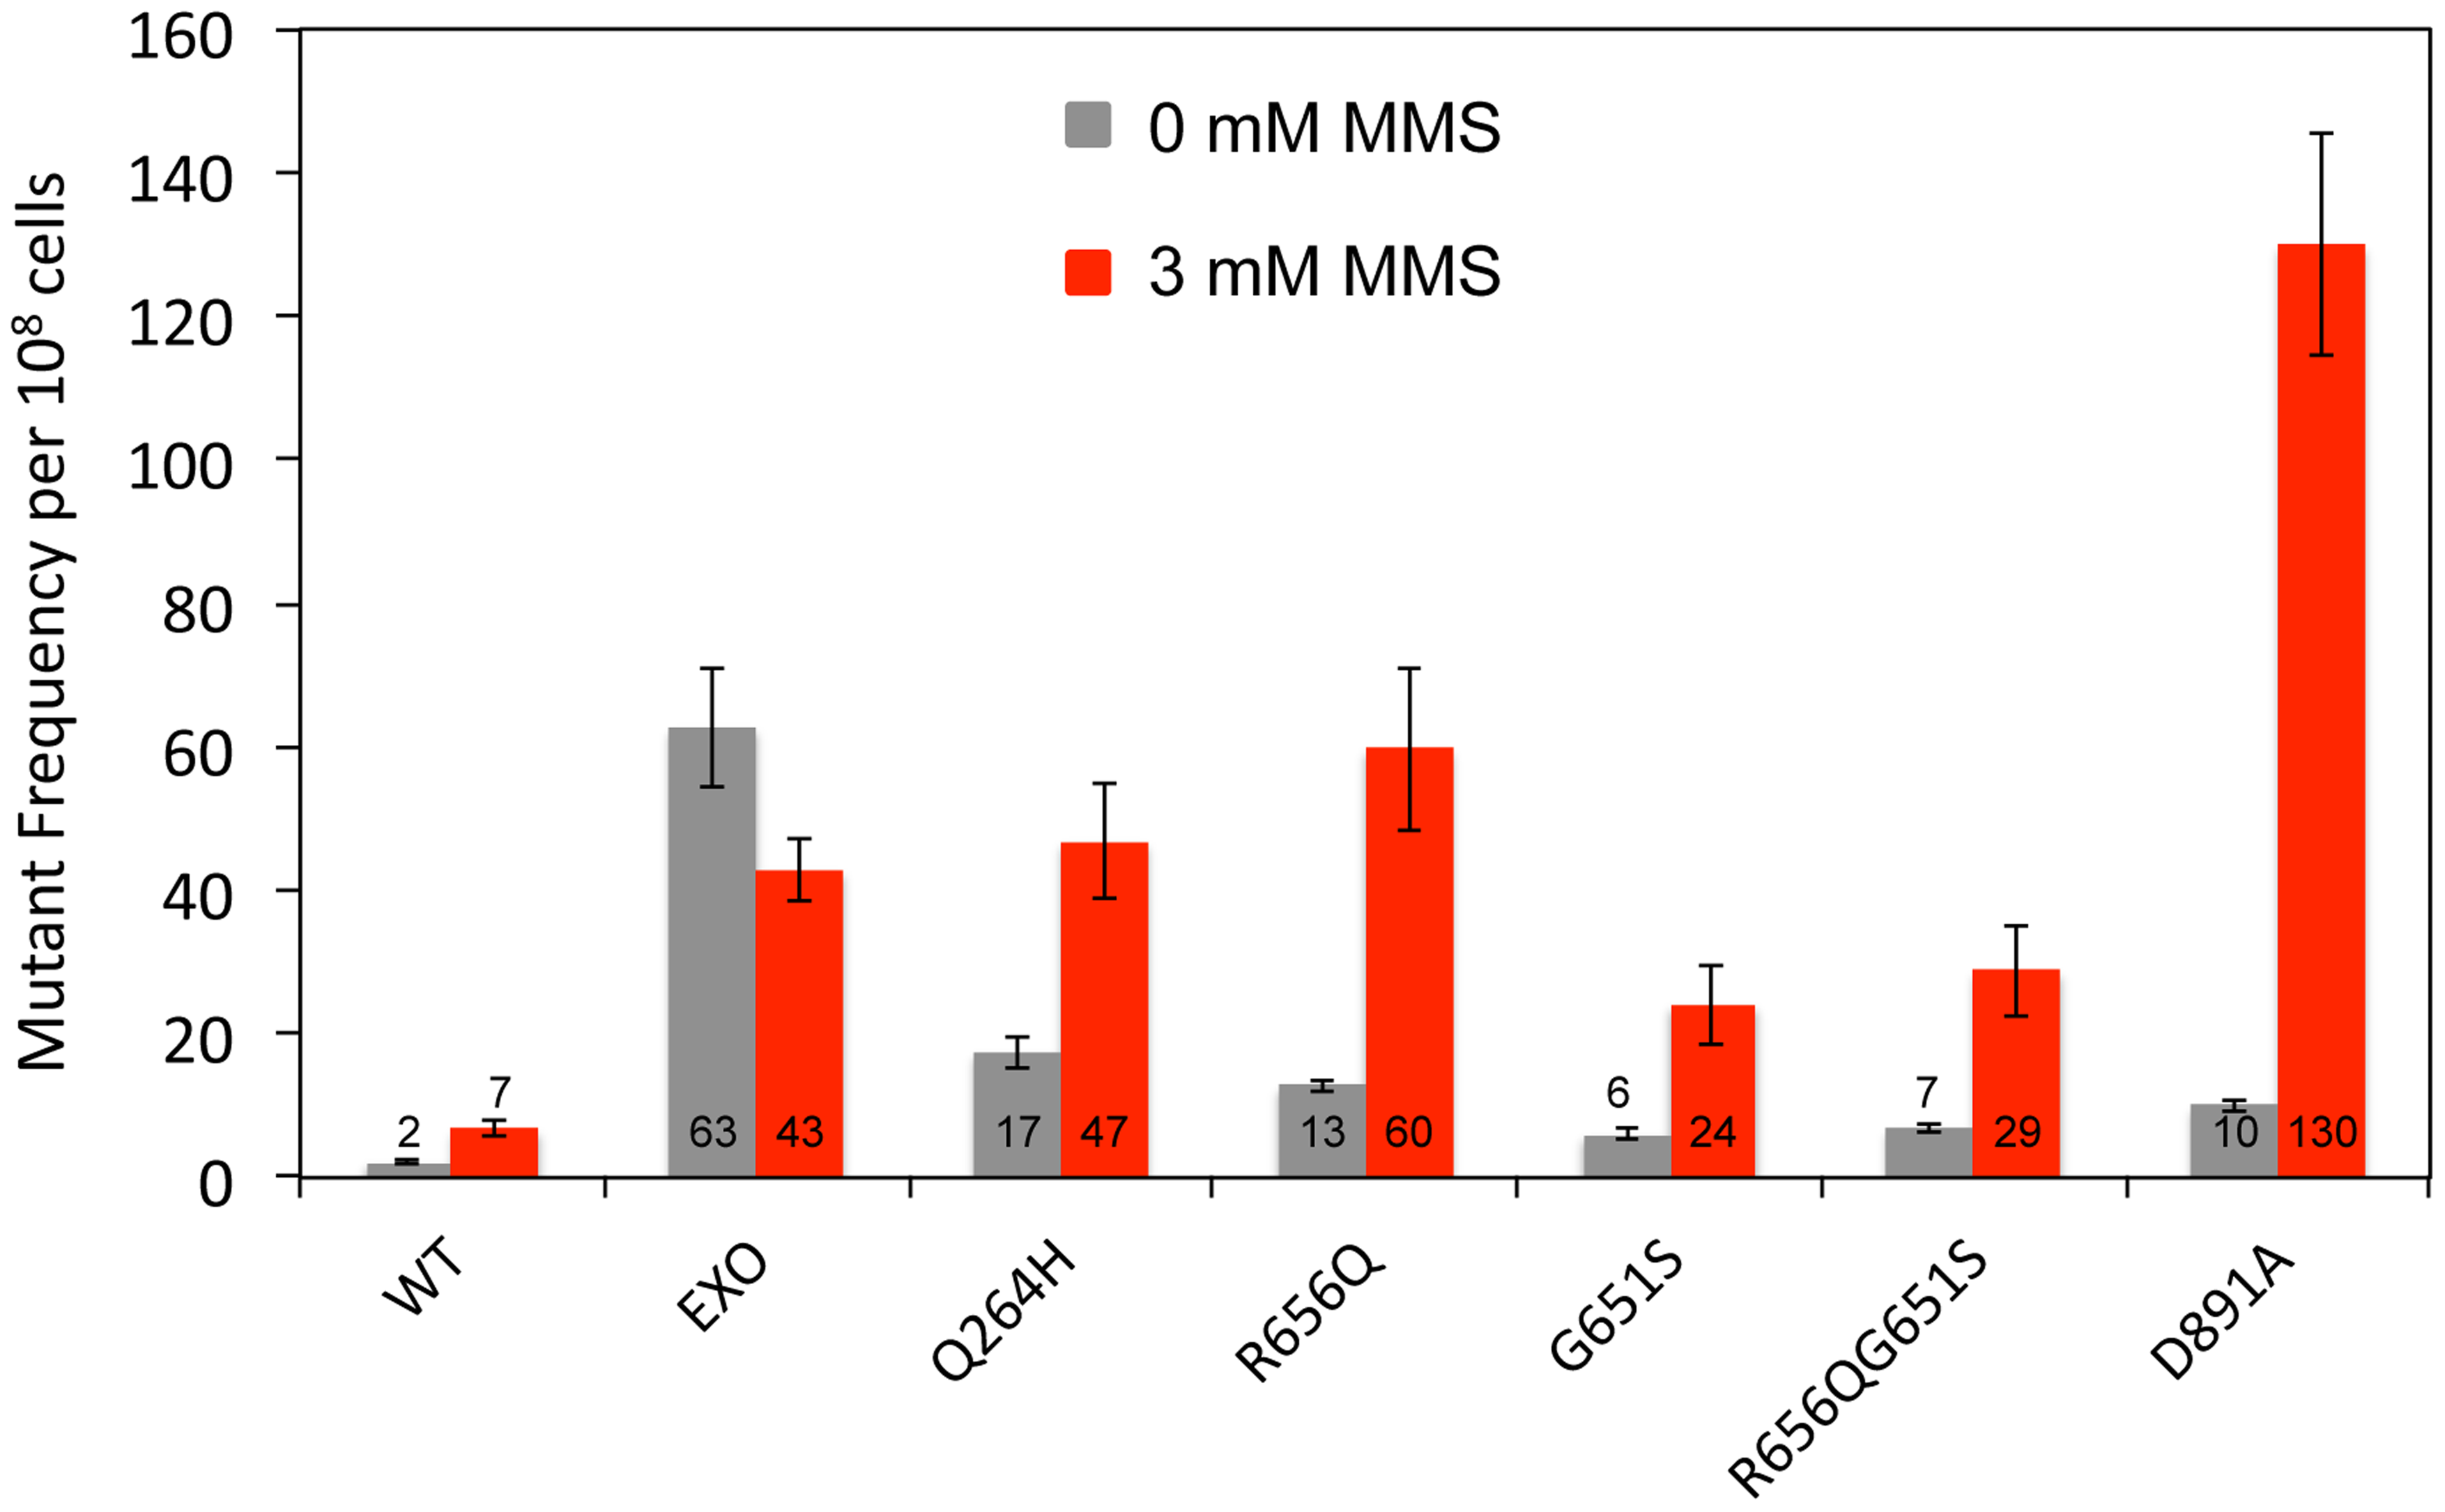 Mutations that disrupted Mip1 polymerase activity caused increased mutant frequency after MMS exposure.